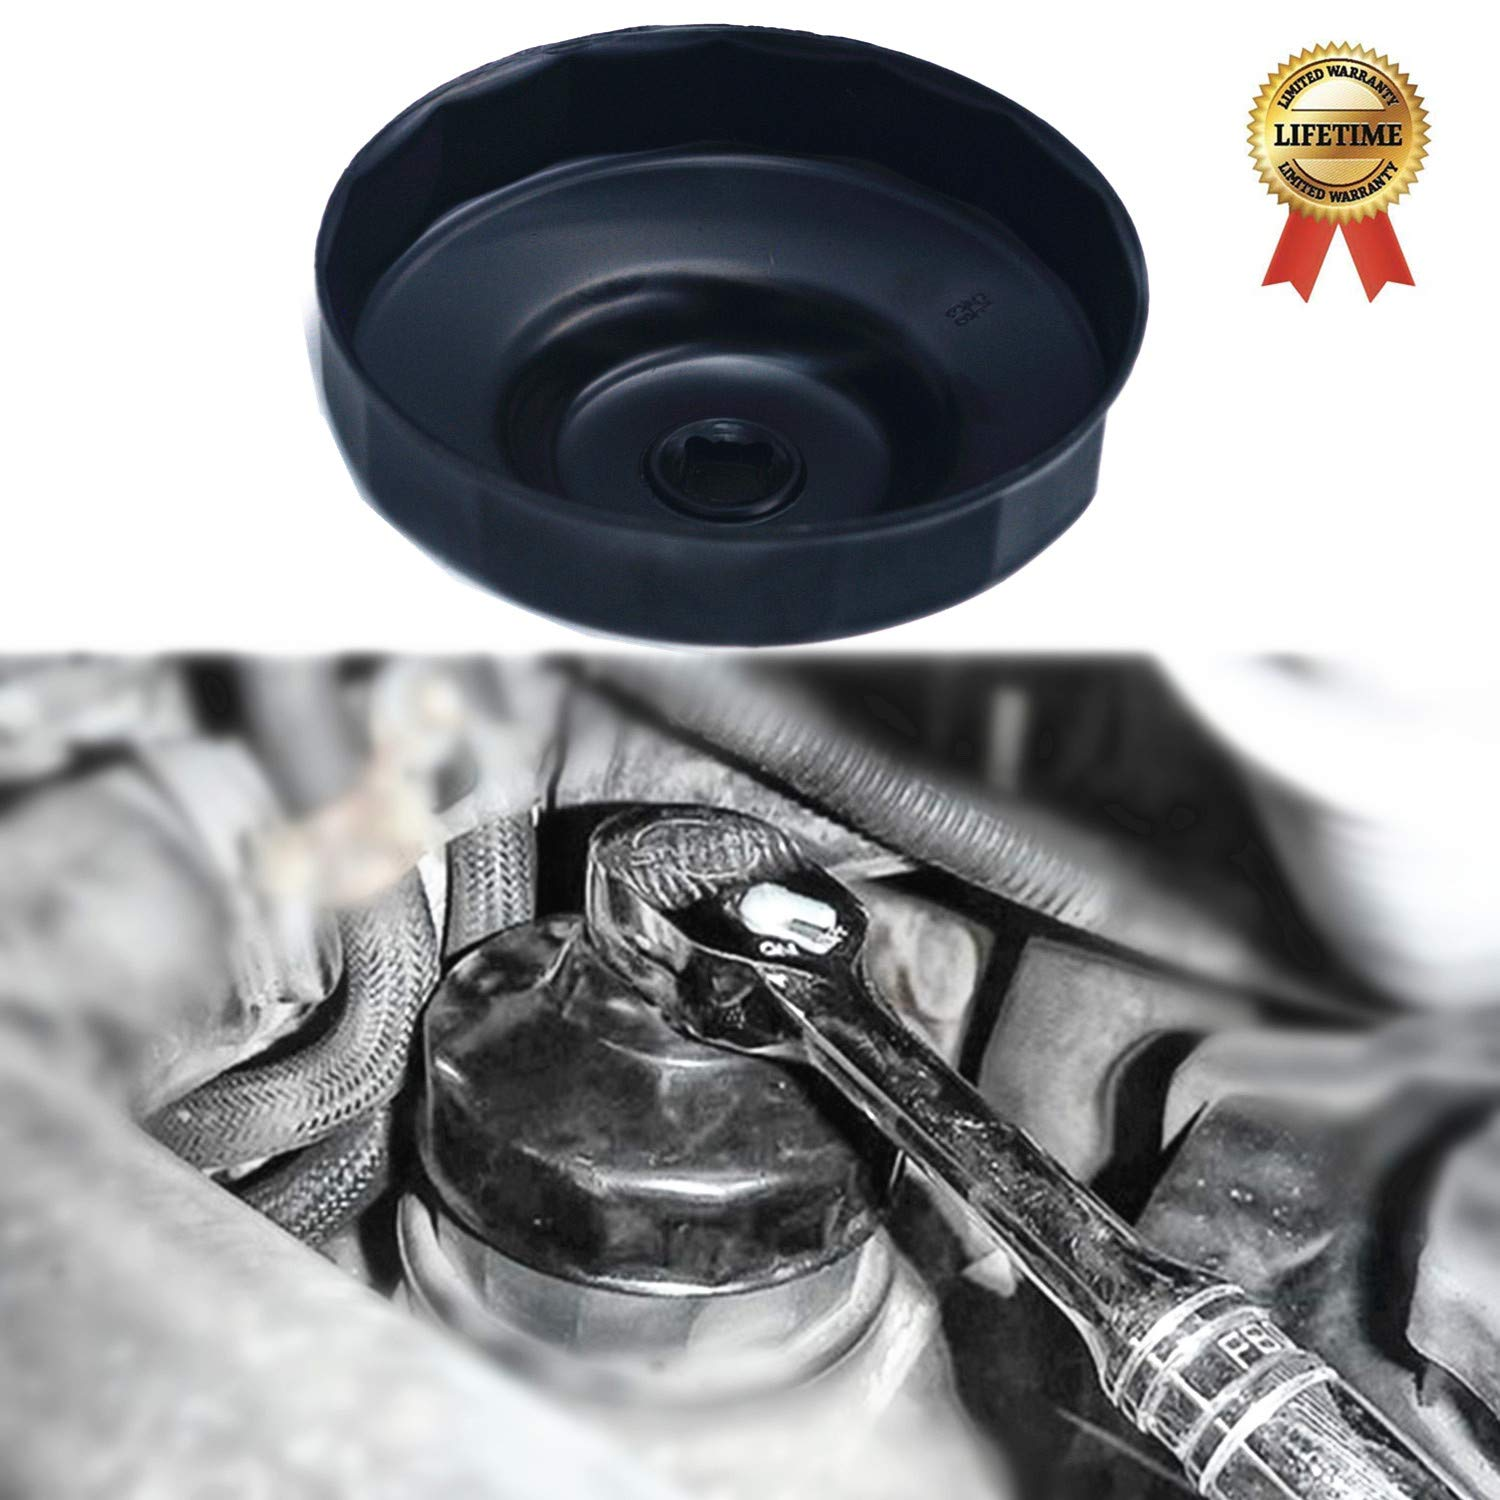 Ease2U 86mm Oil Filter Wrench for BMW,with 86.4mm 16 Flutes fits N54 N55 N52 BMW Engines